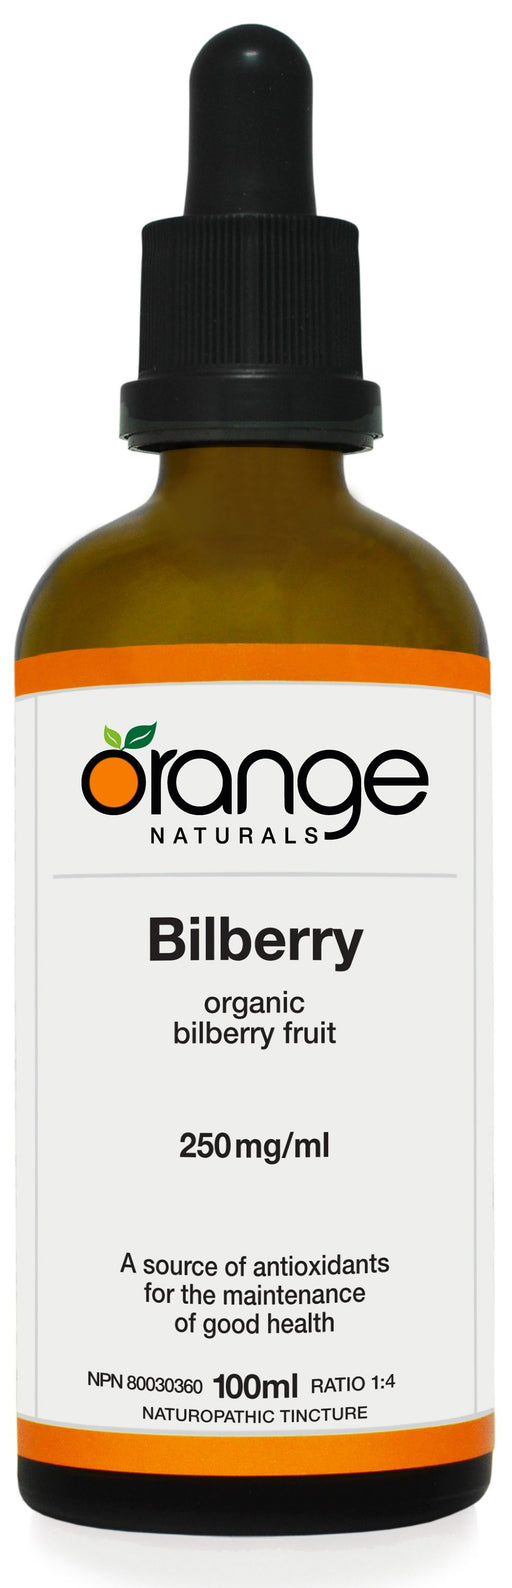 Orange Naturals Bilberry